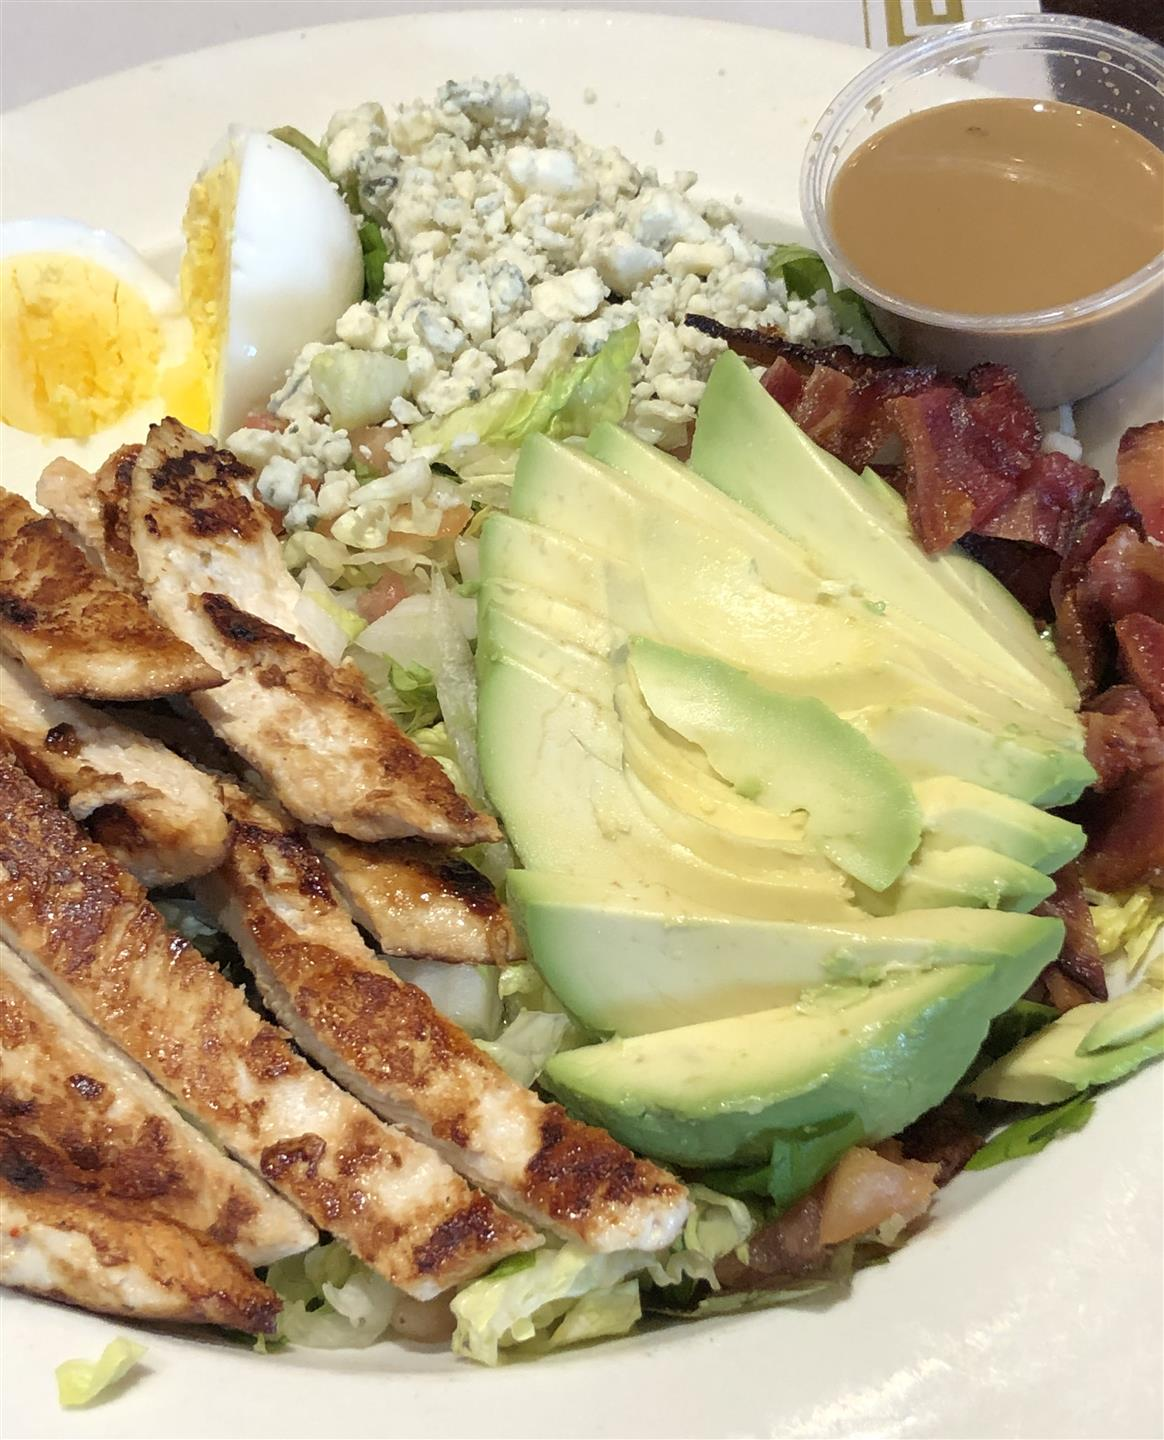 cobb salad: Chopped salad greens, tomato, crispy bacon, grilled chicken breast, hard-boiled egg, avocado, bleu cheese, with vinaigrette dressing.